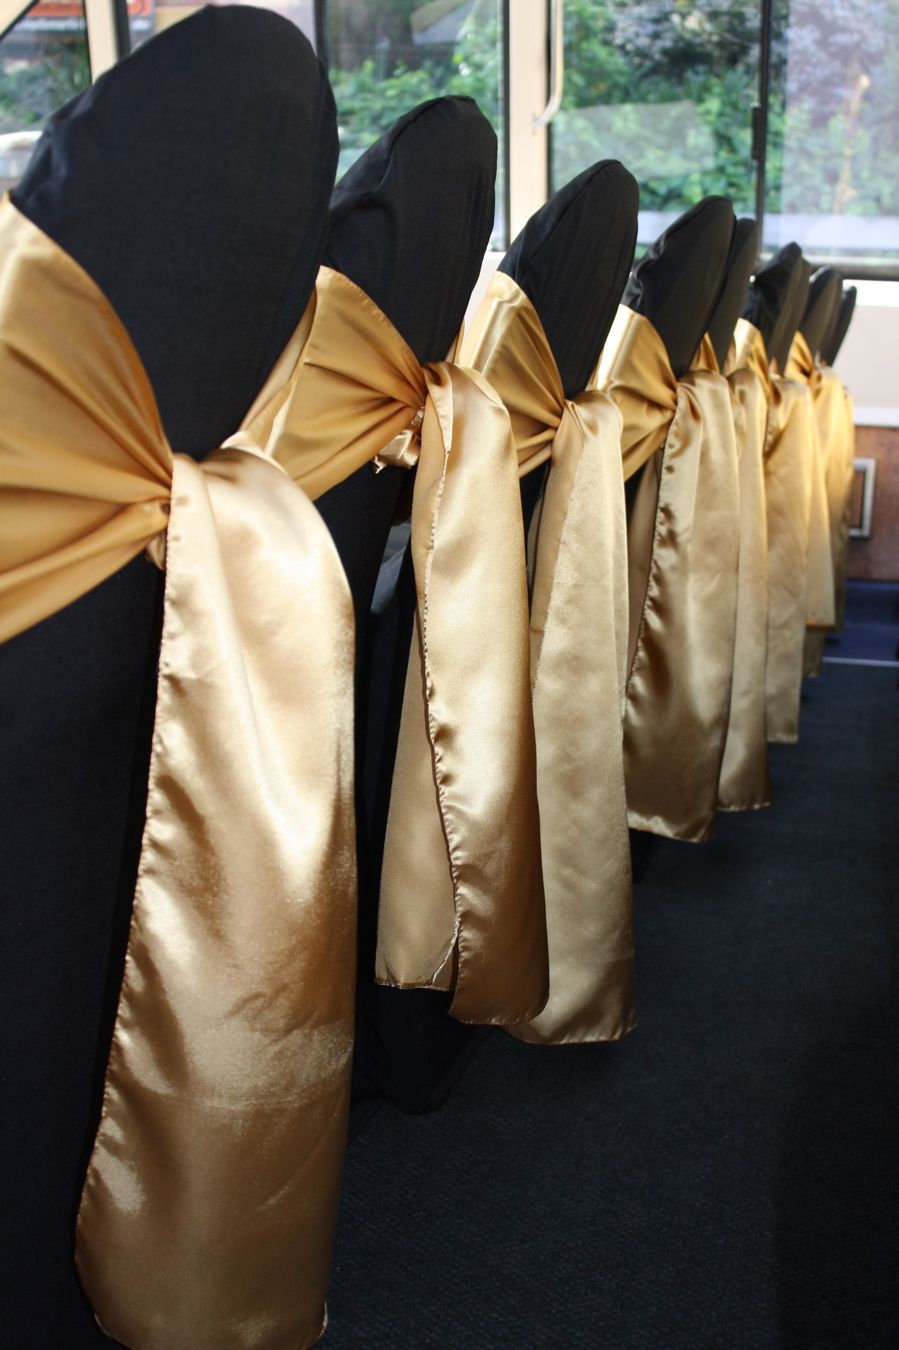 chair cover rentals langley buffalo leather this give you a good idea of what it would look like if we used cobalt royal covers and gold sashes ignore the black